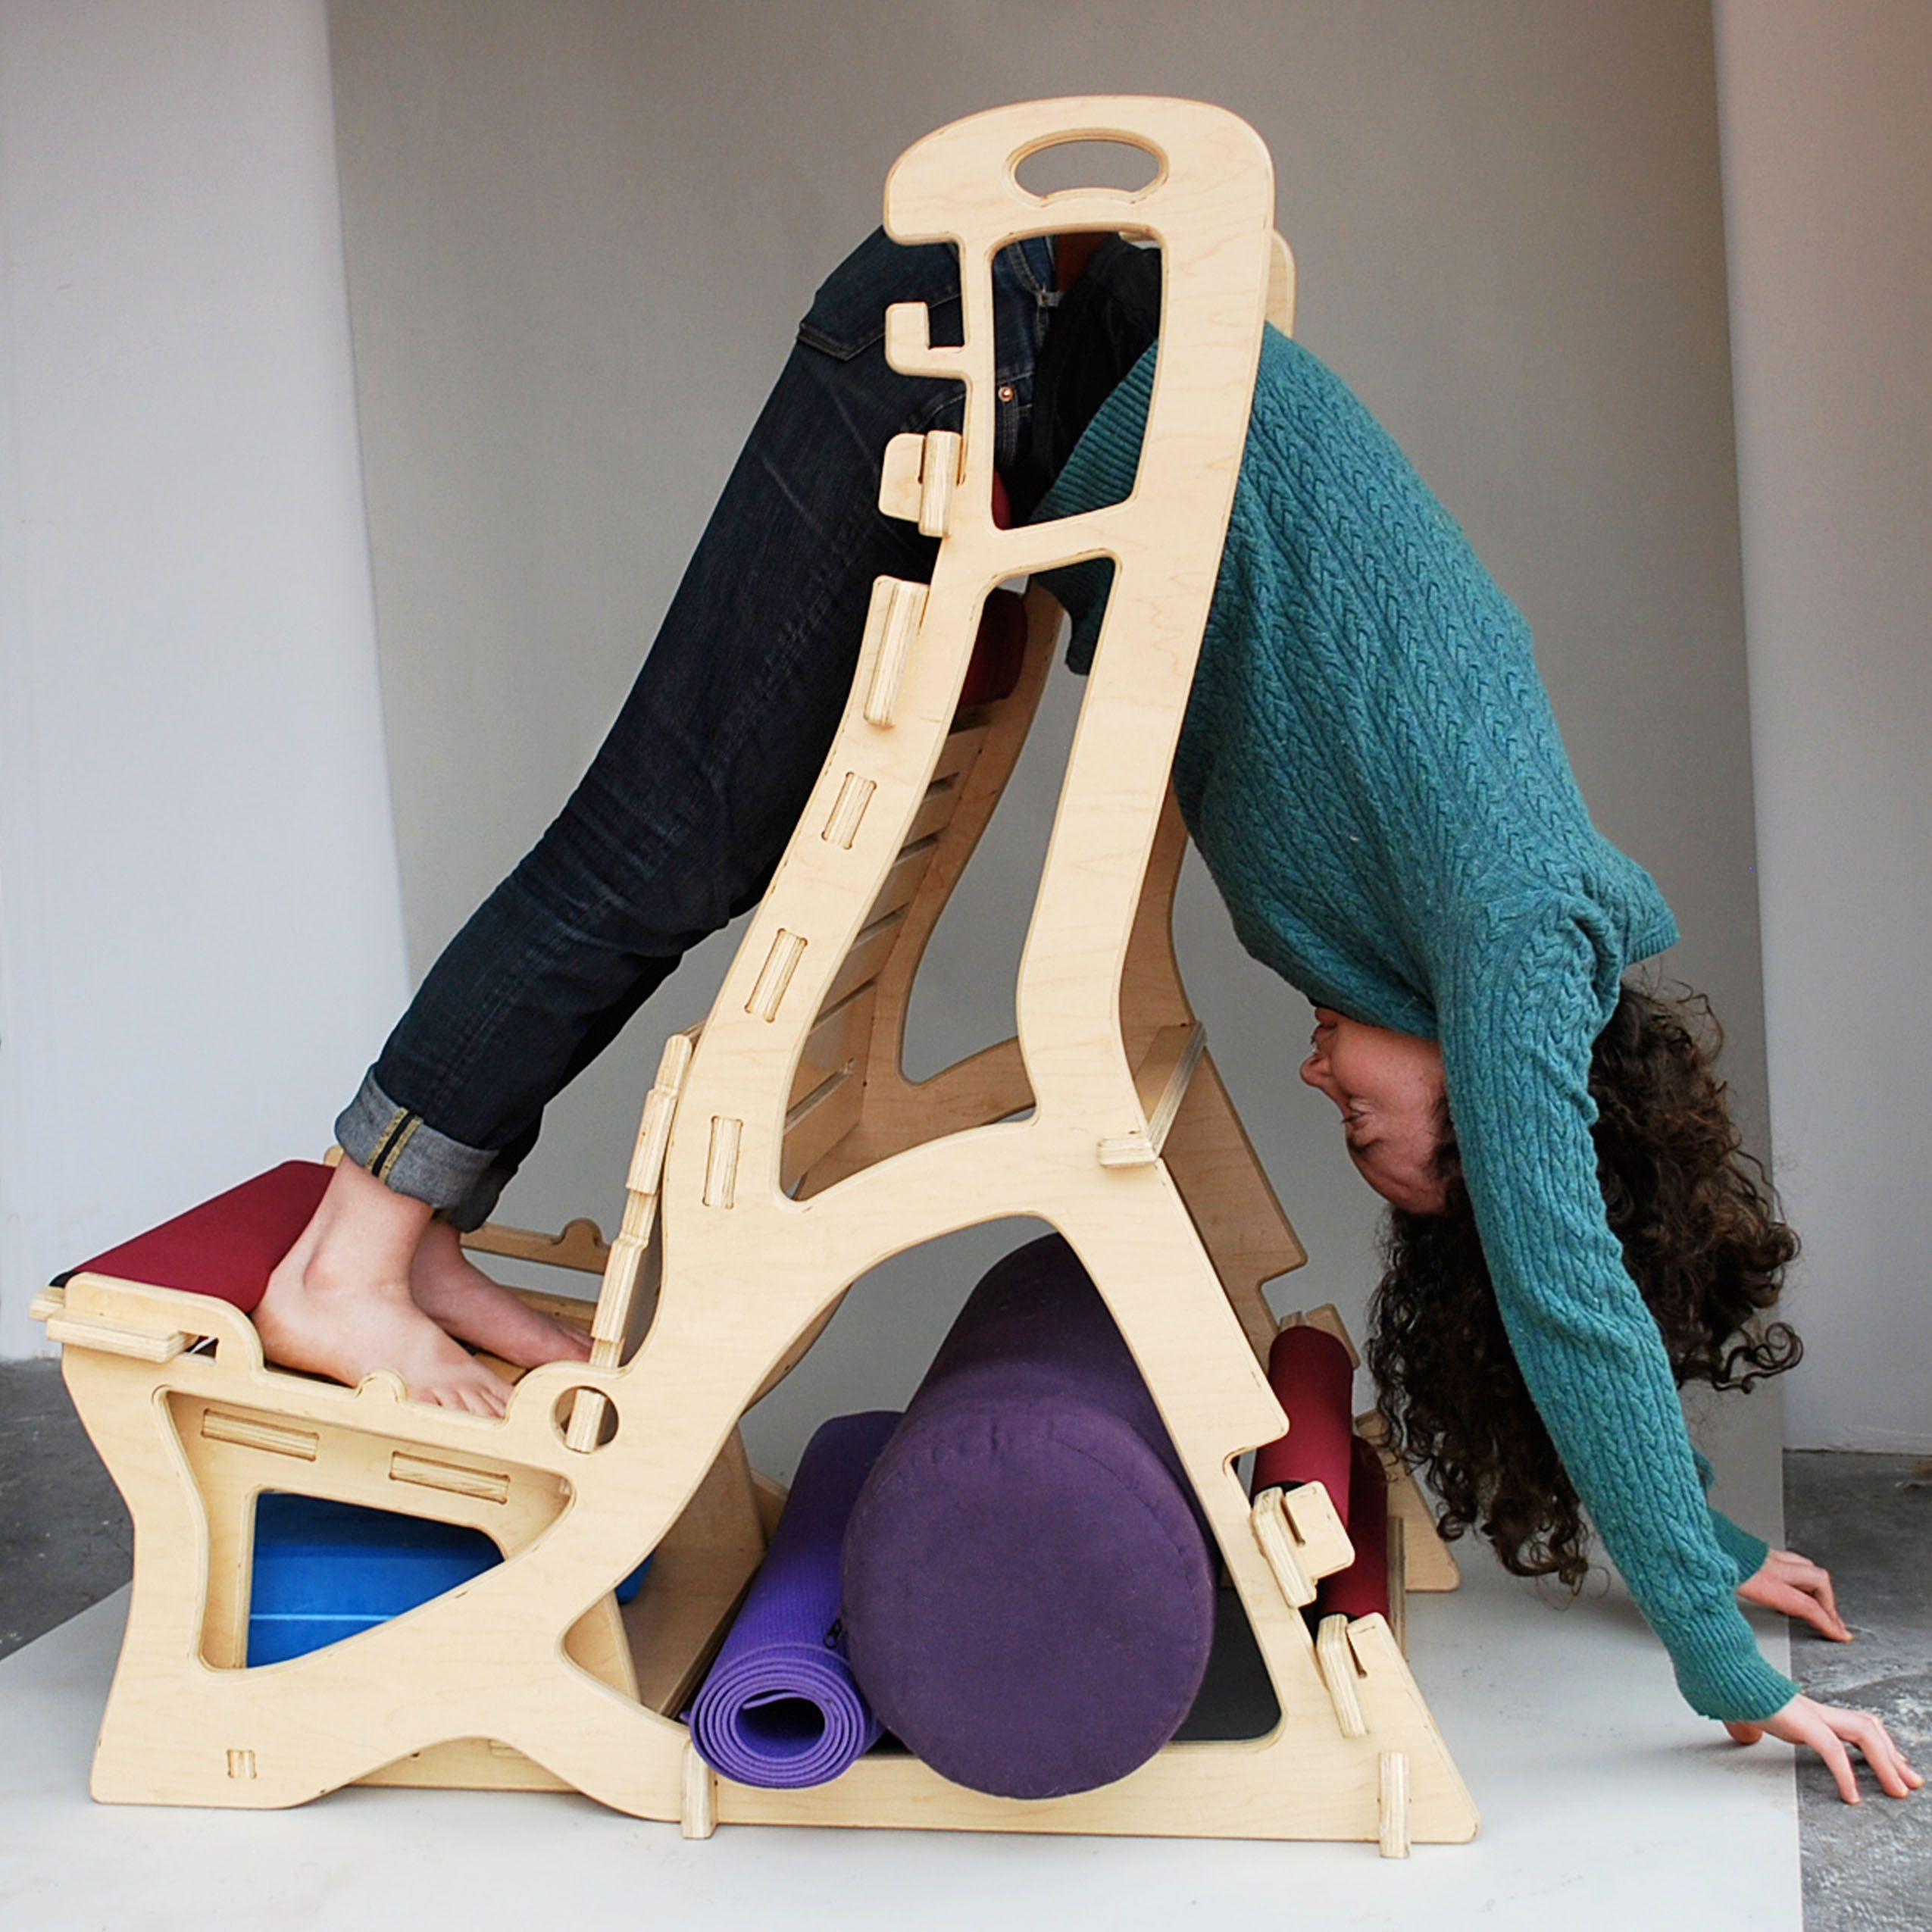 The brief was to create furniture for compact living